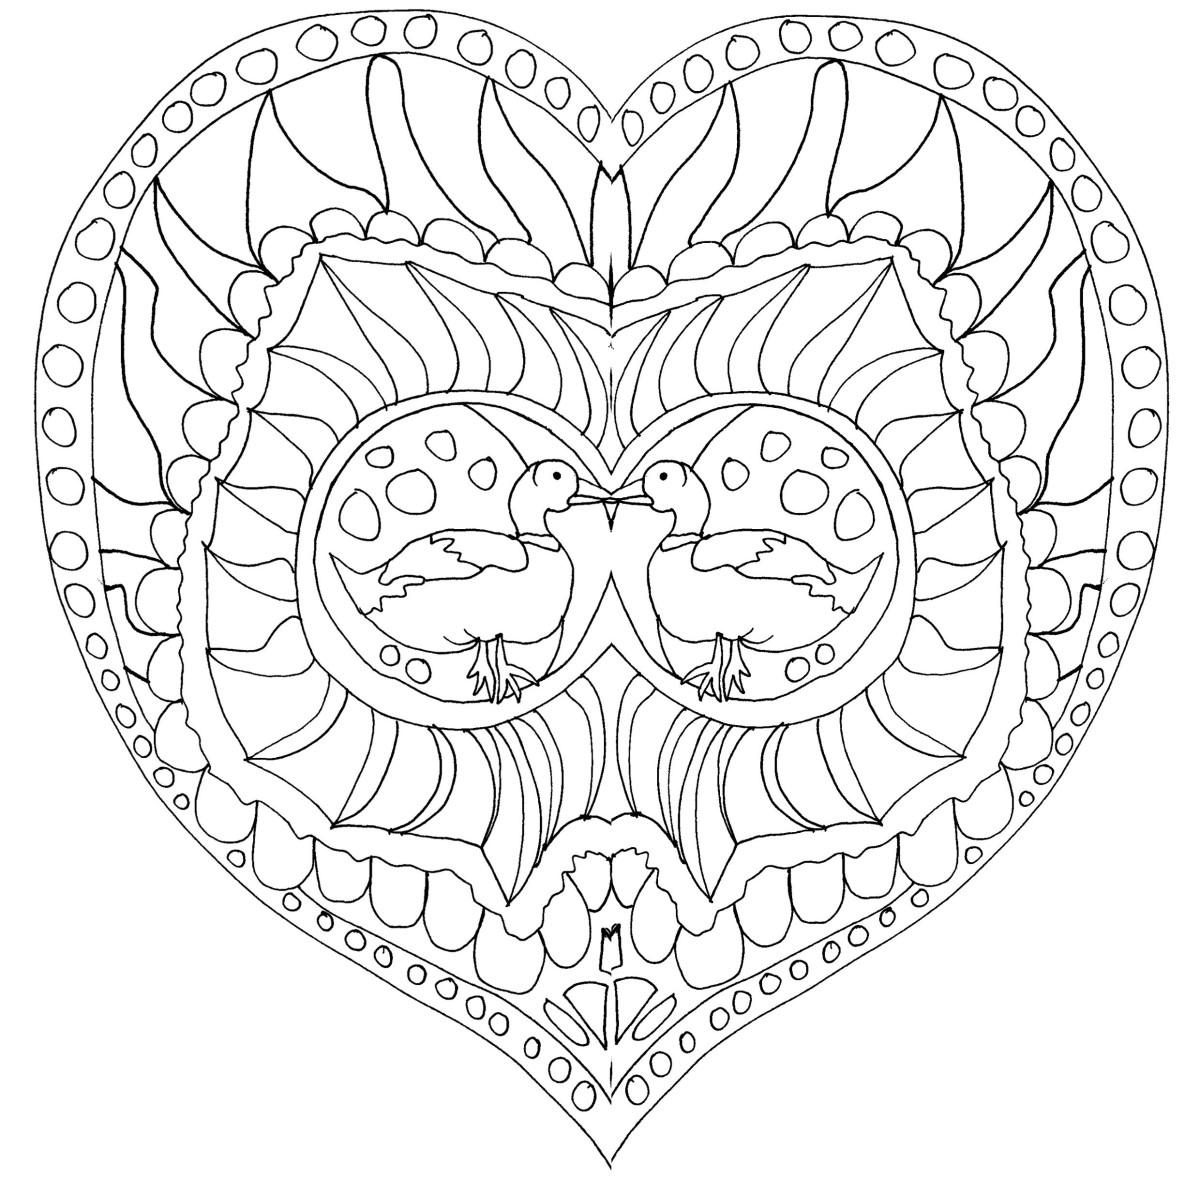 This mandala-inspired coloring page features two ducks at the center of a heart design.